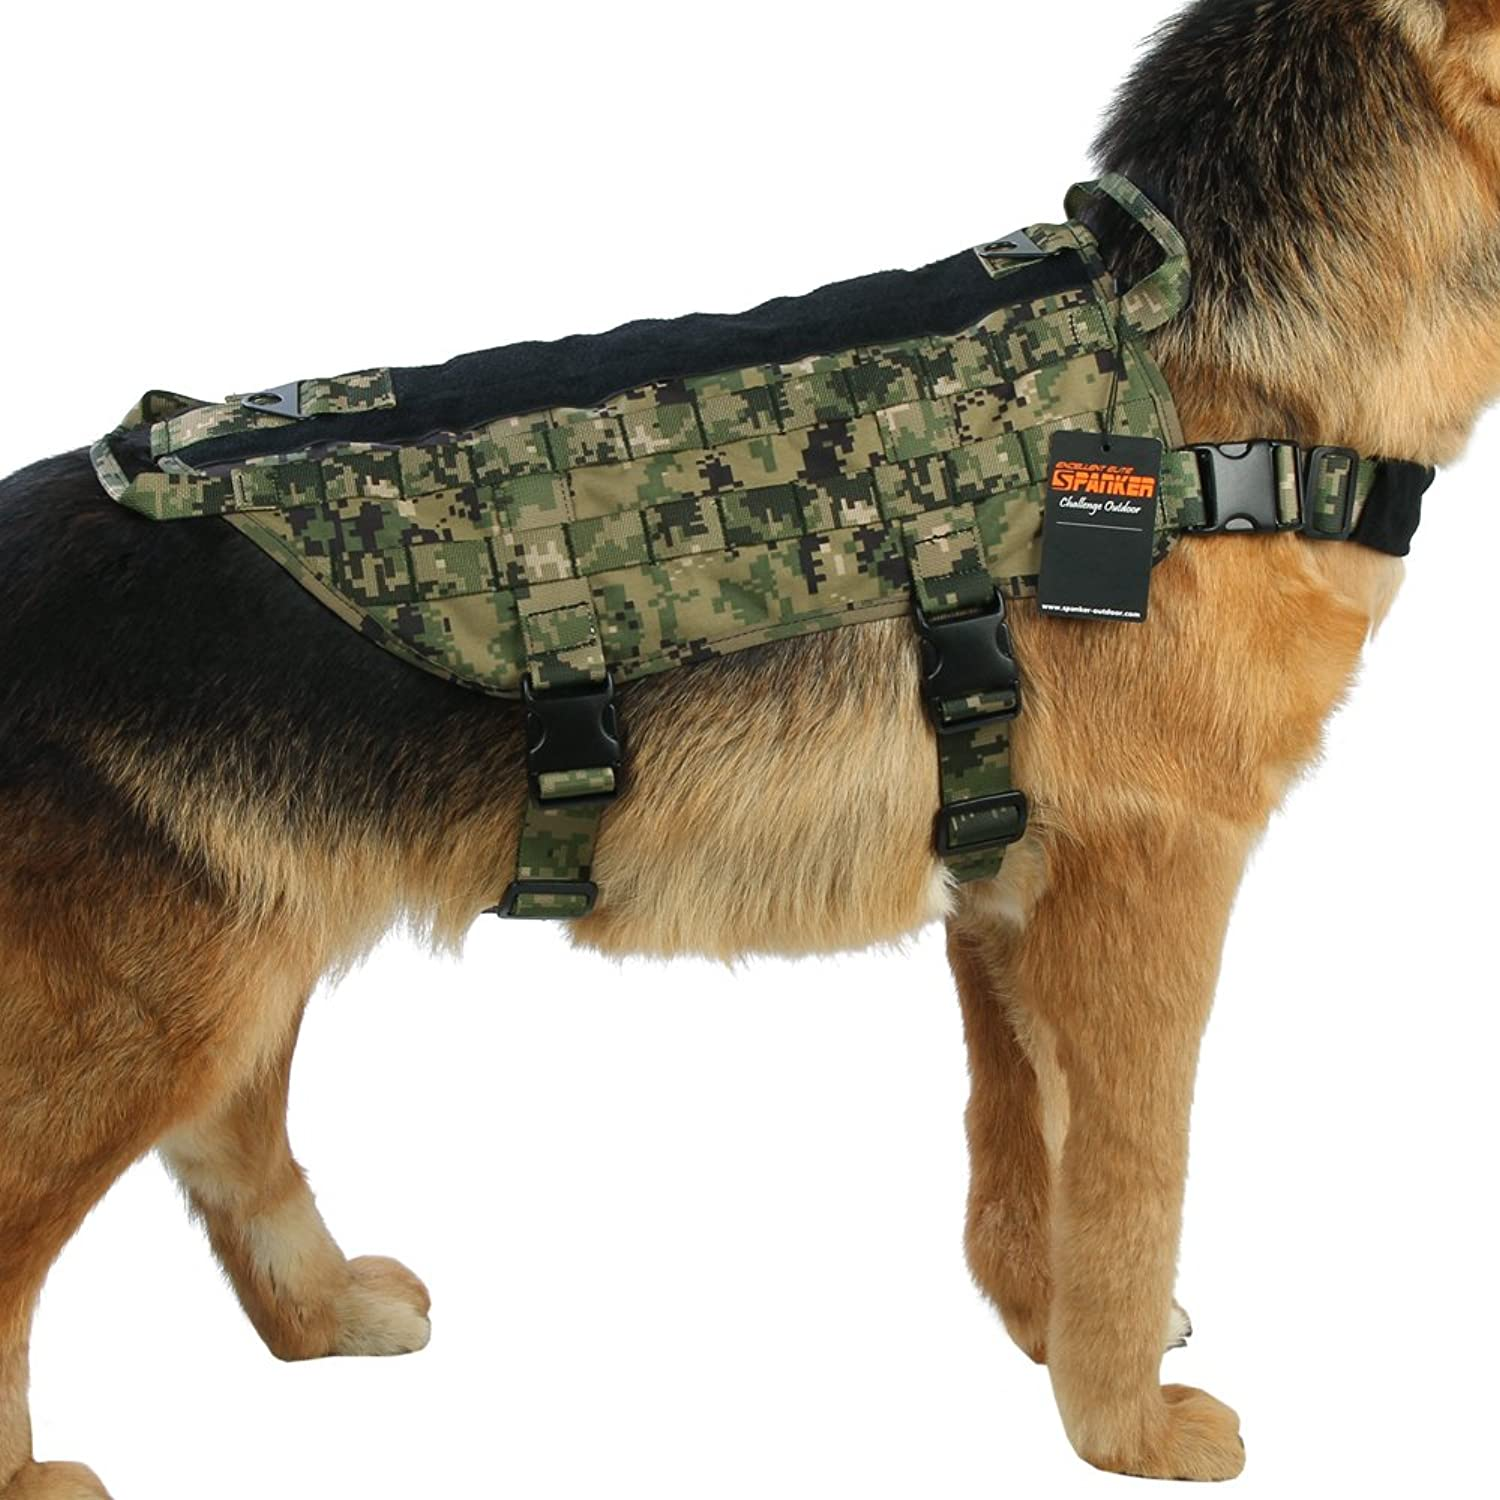 Excellent Elite Spanker Tactical Dog Harness Nylon Molle Patrol Military Training Dog Vest Harness Small Medium and Large Dogs(AOR2L)